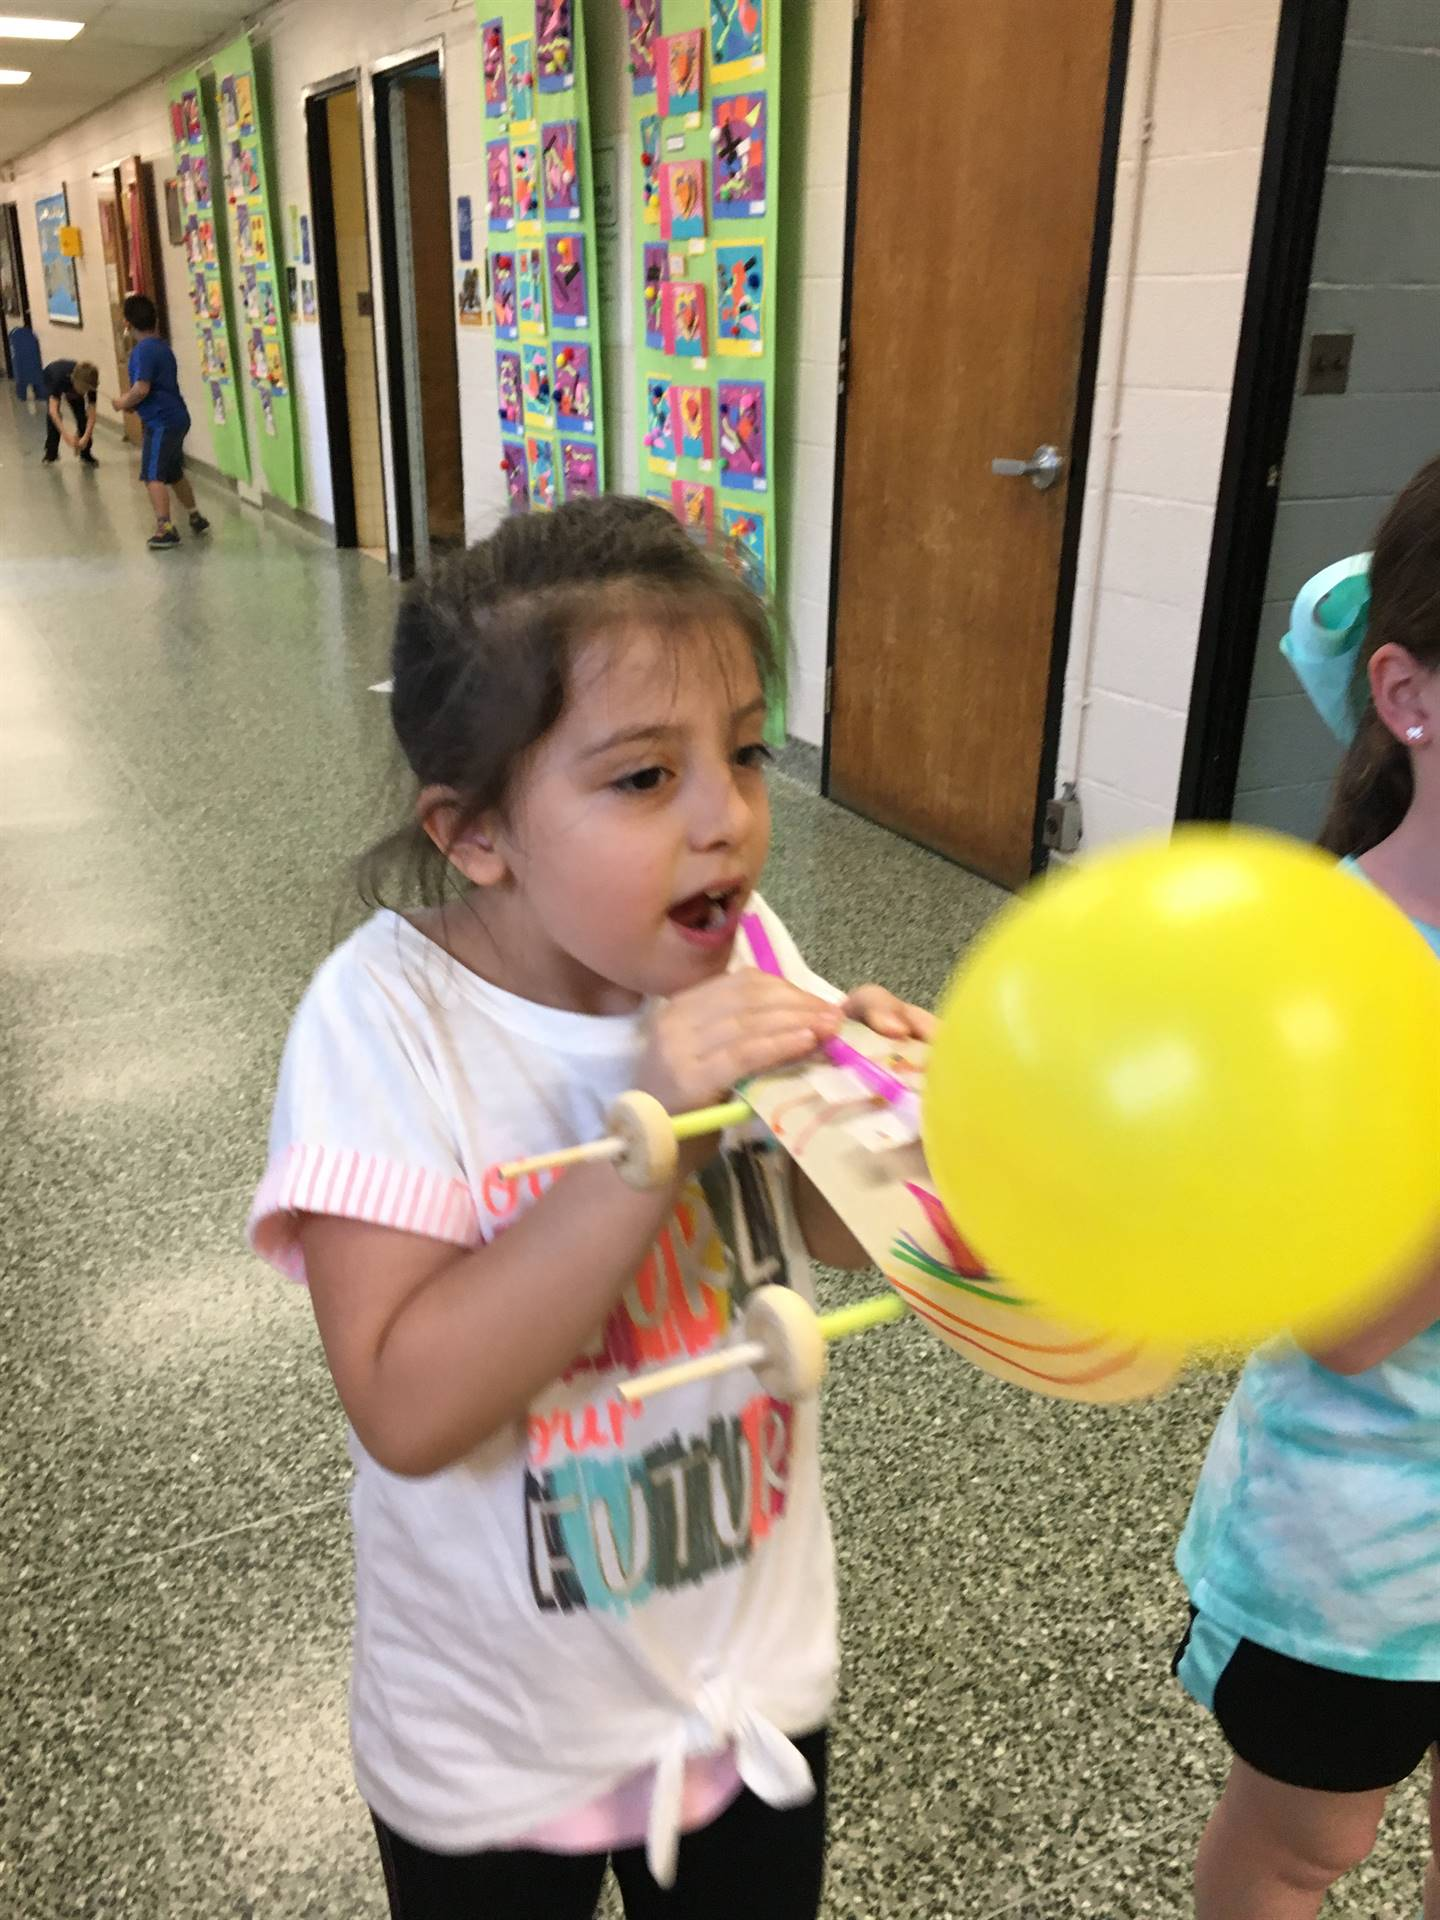 Student Blowing Up Balloon For Balloon Car